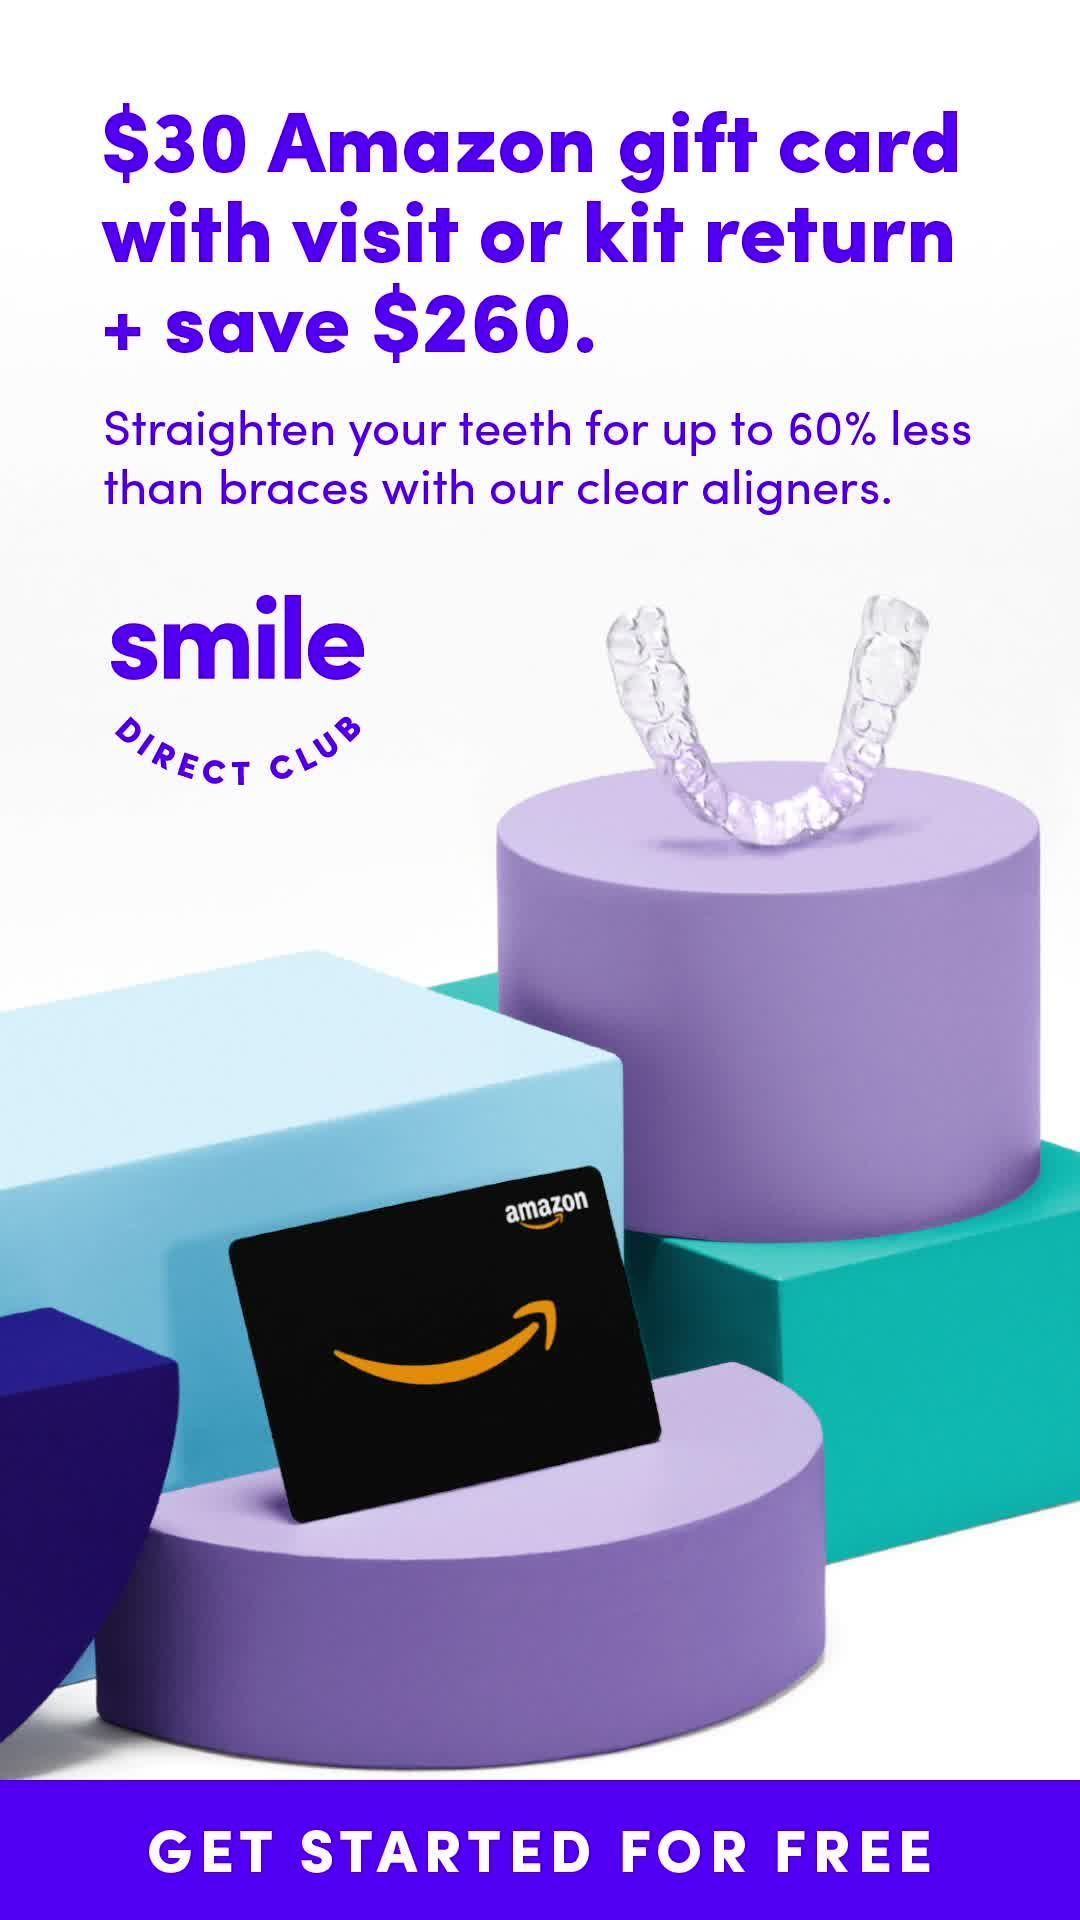 Get 260 off your new smile, plus a 30 Amazon gift card